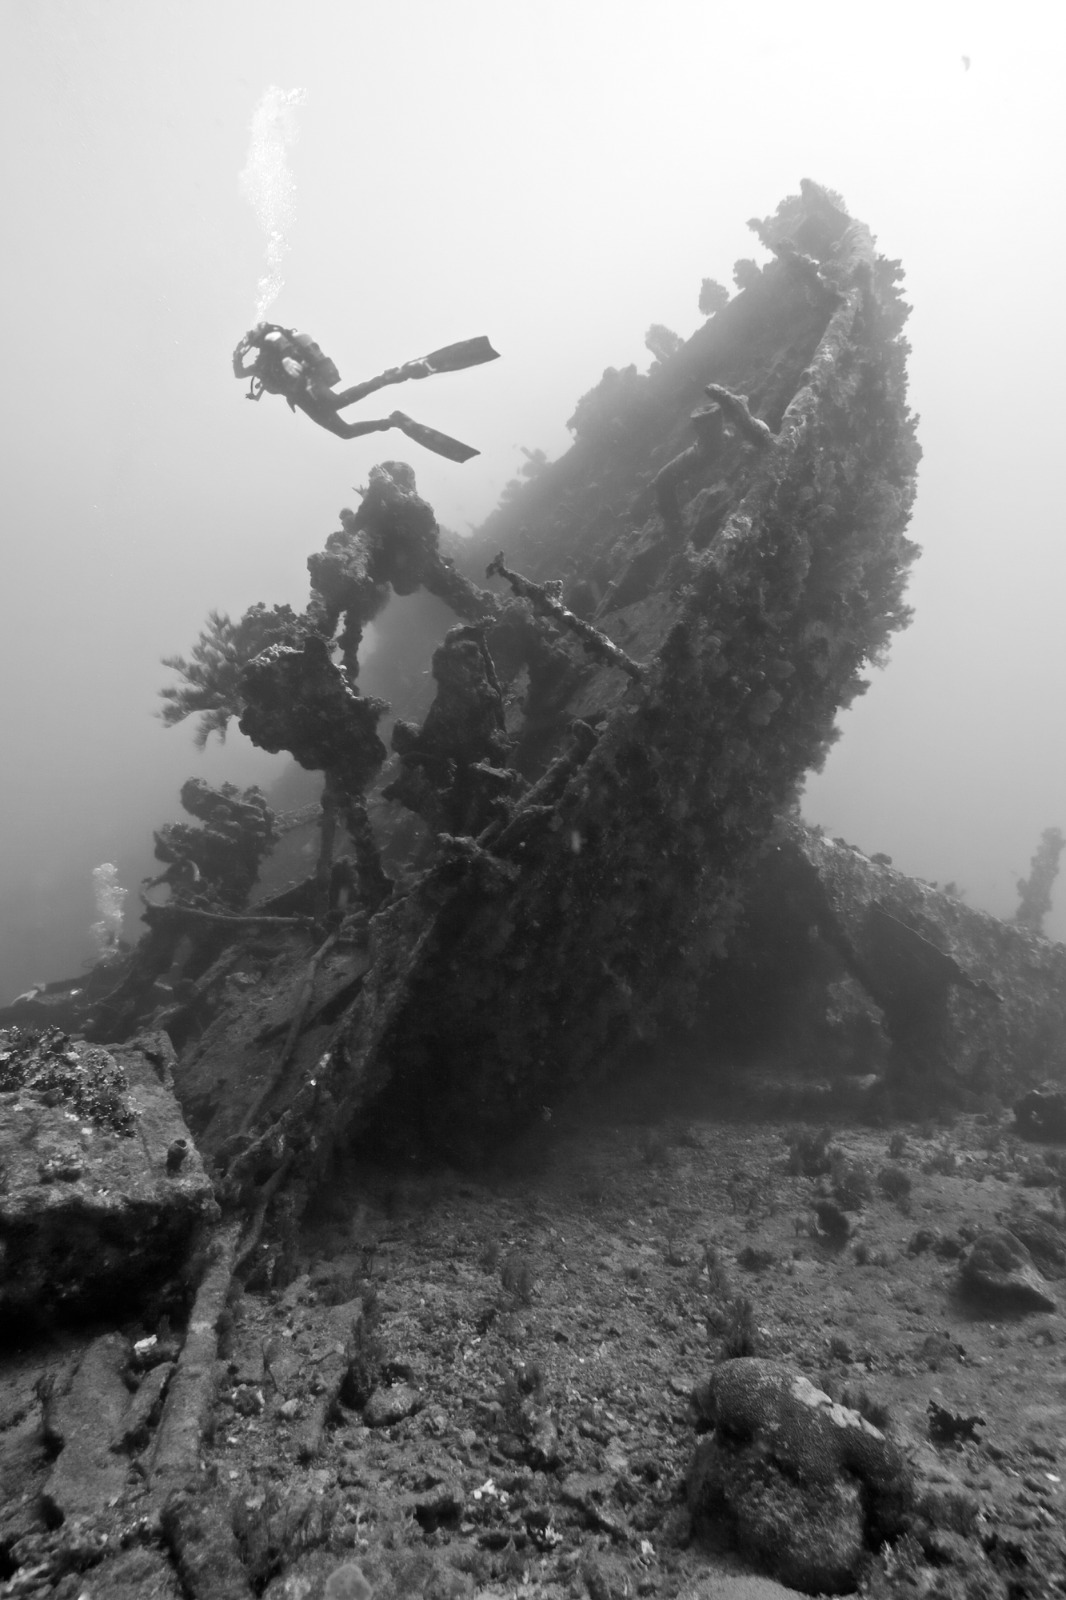 Wreck of the Ulysses